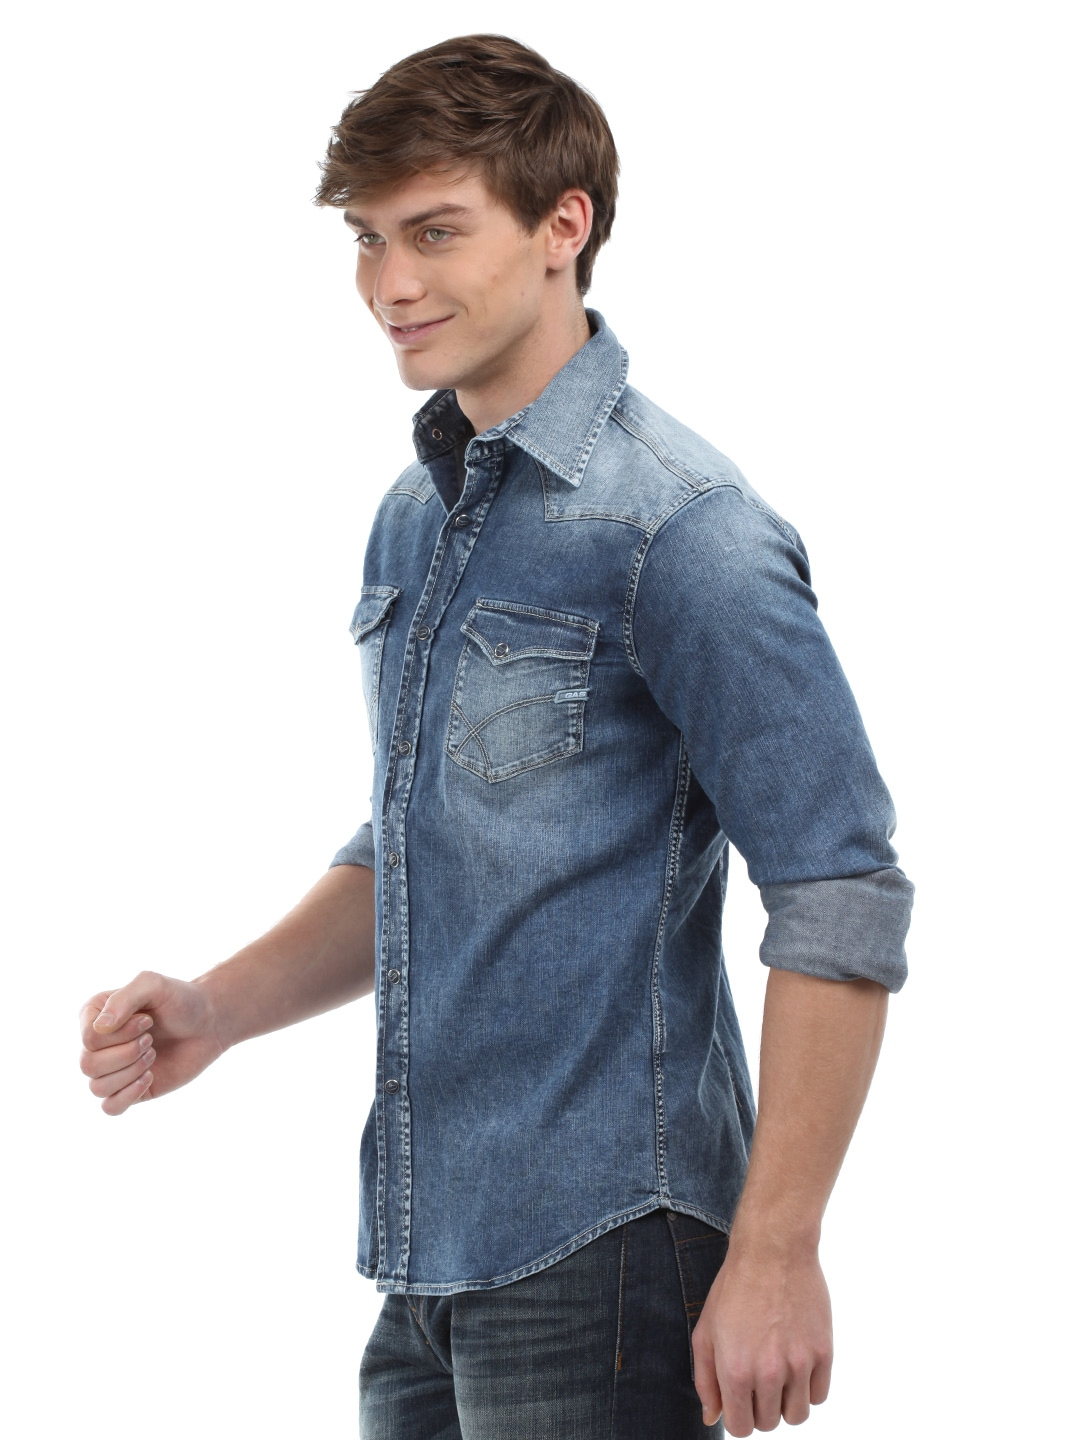 These GAS shirts can be coupled with simple denim skinnies and a chunky metal Necklace for an edgy yet casual weekend-outing look. The party scene just went pop with the black men's GAS shirts with long sleeves bearing roll-up feature, and spread collar - these Pieces can be coupled with washed denims, suede Shoes, and gel-styled Hair.